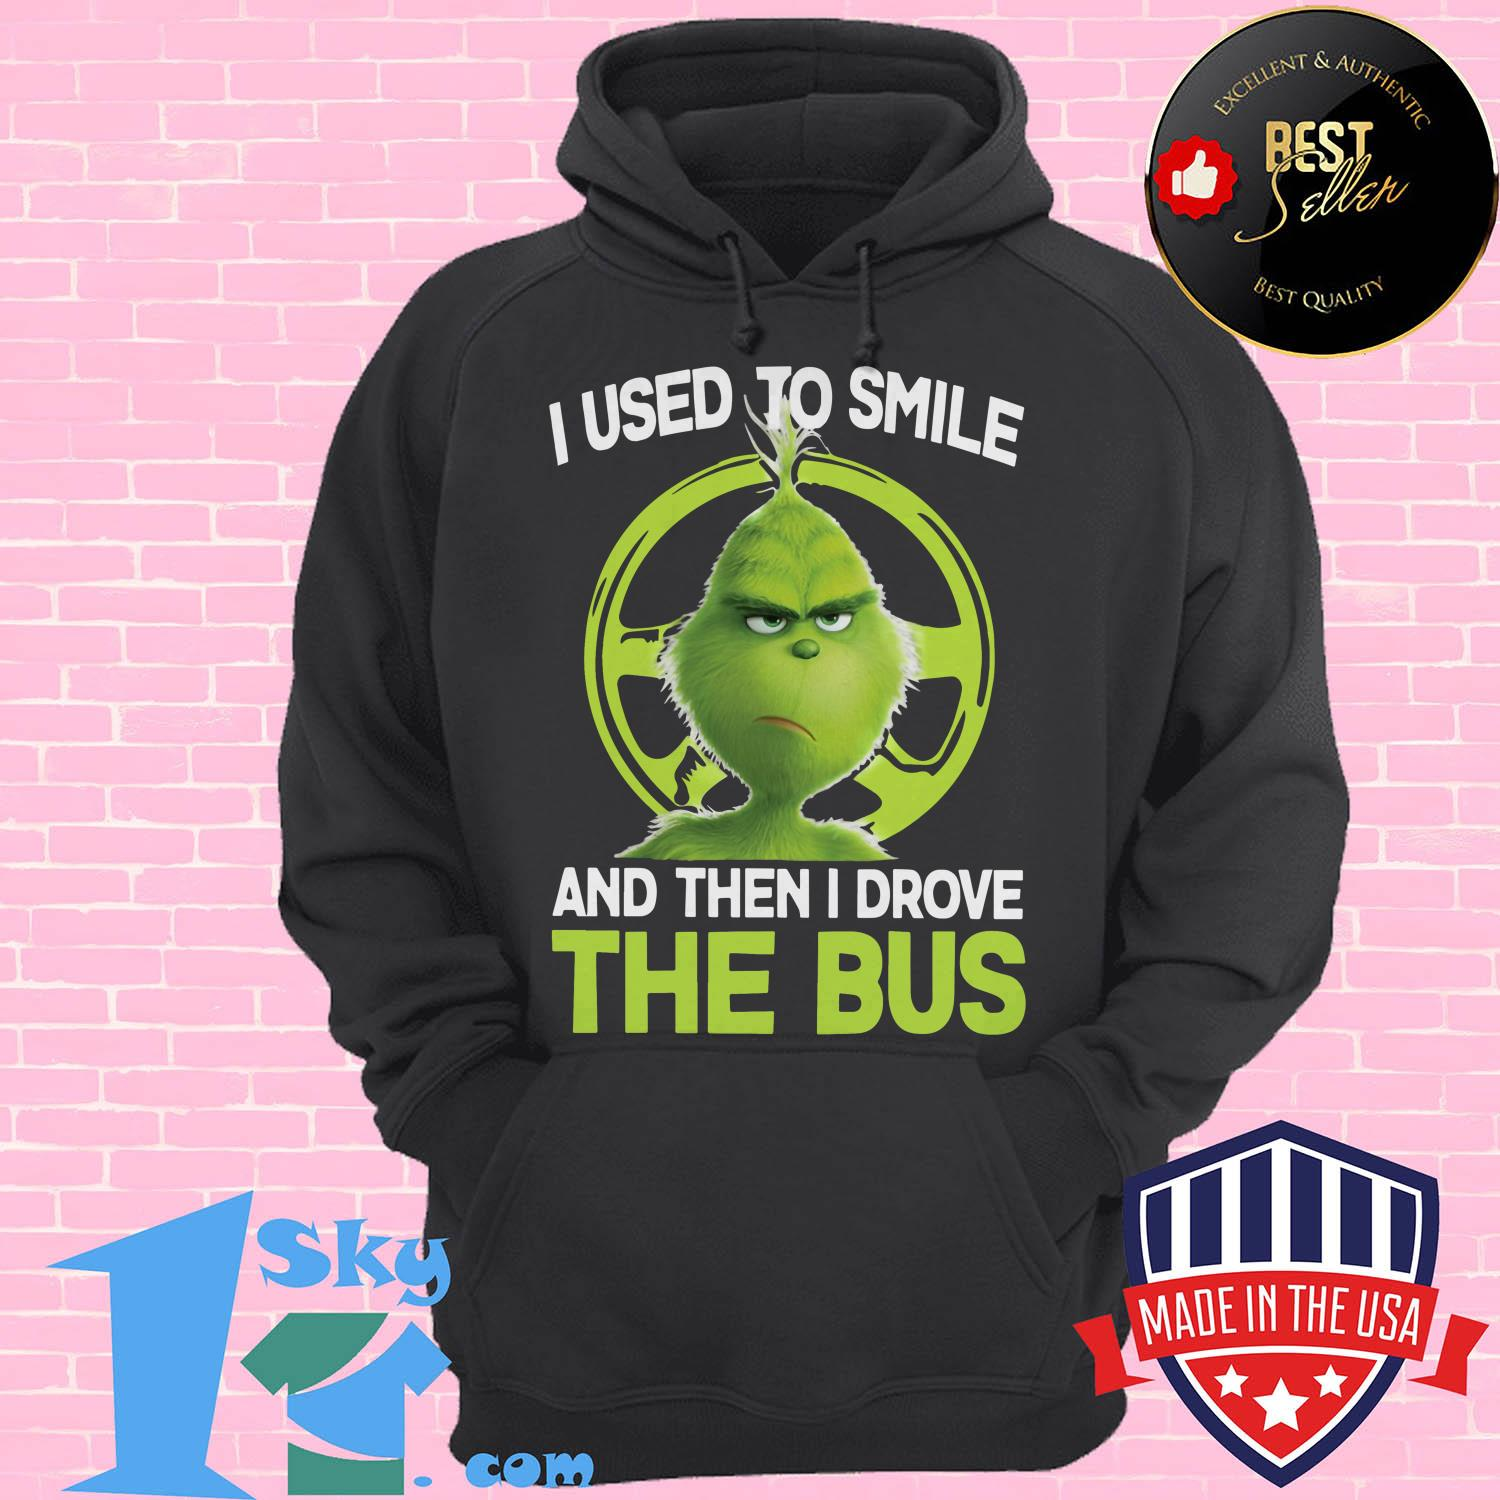 the grinch i used to smile and then i drove the bus hoodie - The Grinch I Used To Smile And Then I Drove The Bus shirt